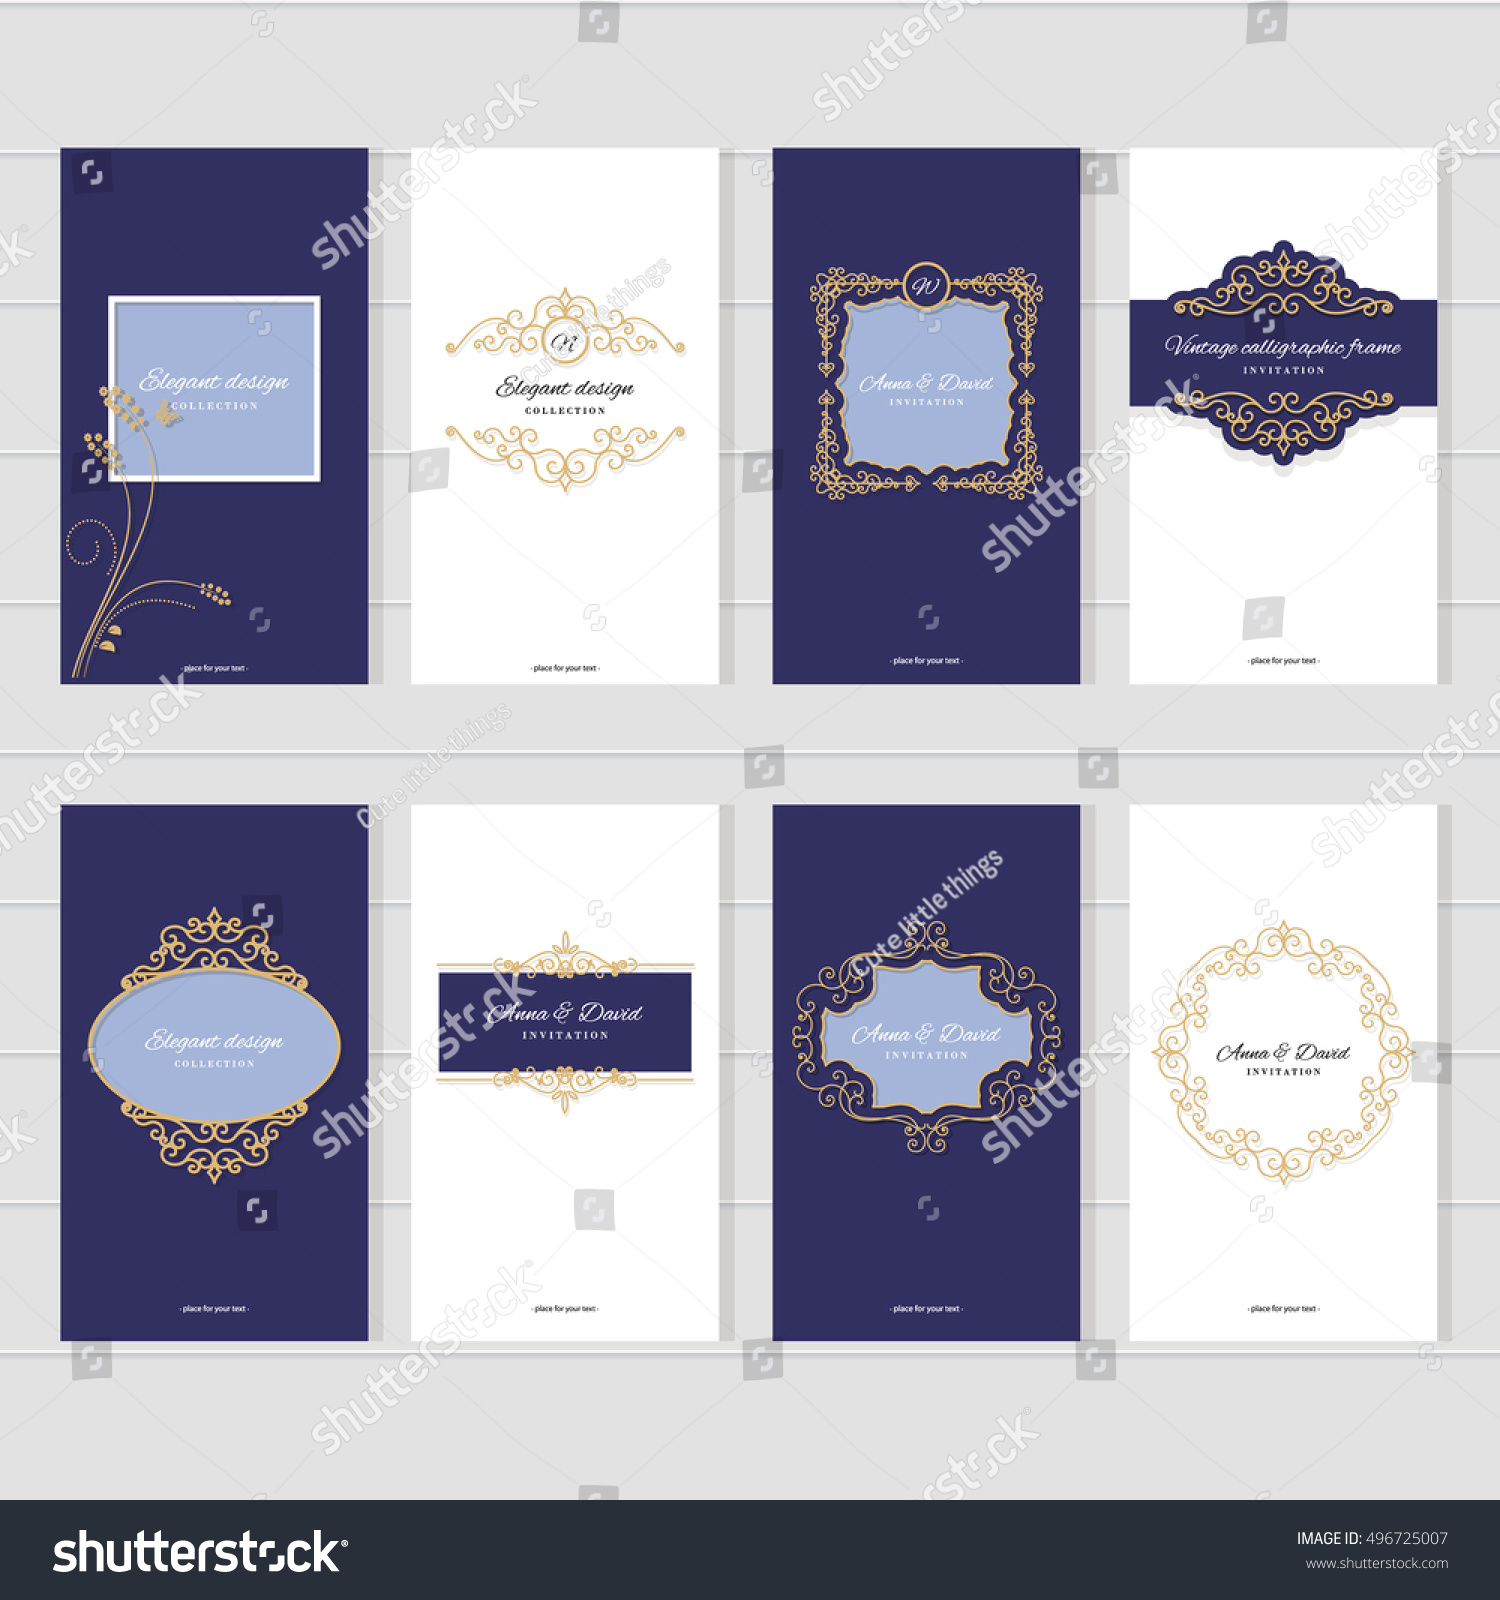 Luxury vintage card templates set wedding stock vector 496725007 luxury vintage card templates set for wedding invitations elegant greeting cards beauty industry kristyandbryce Images